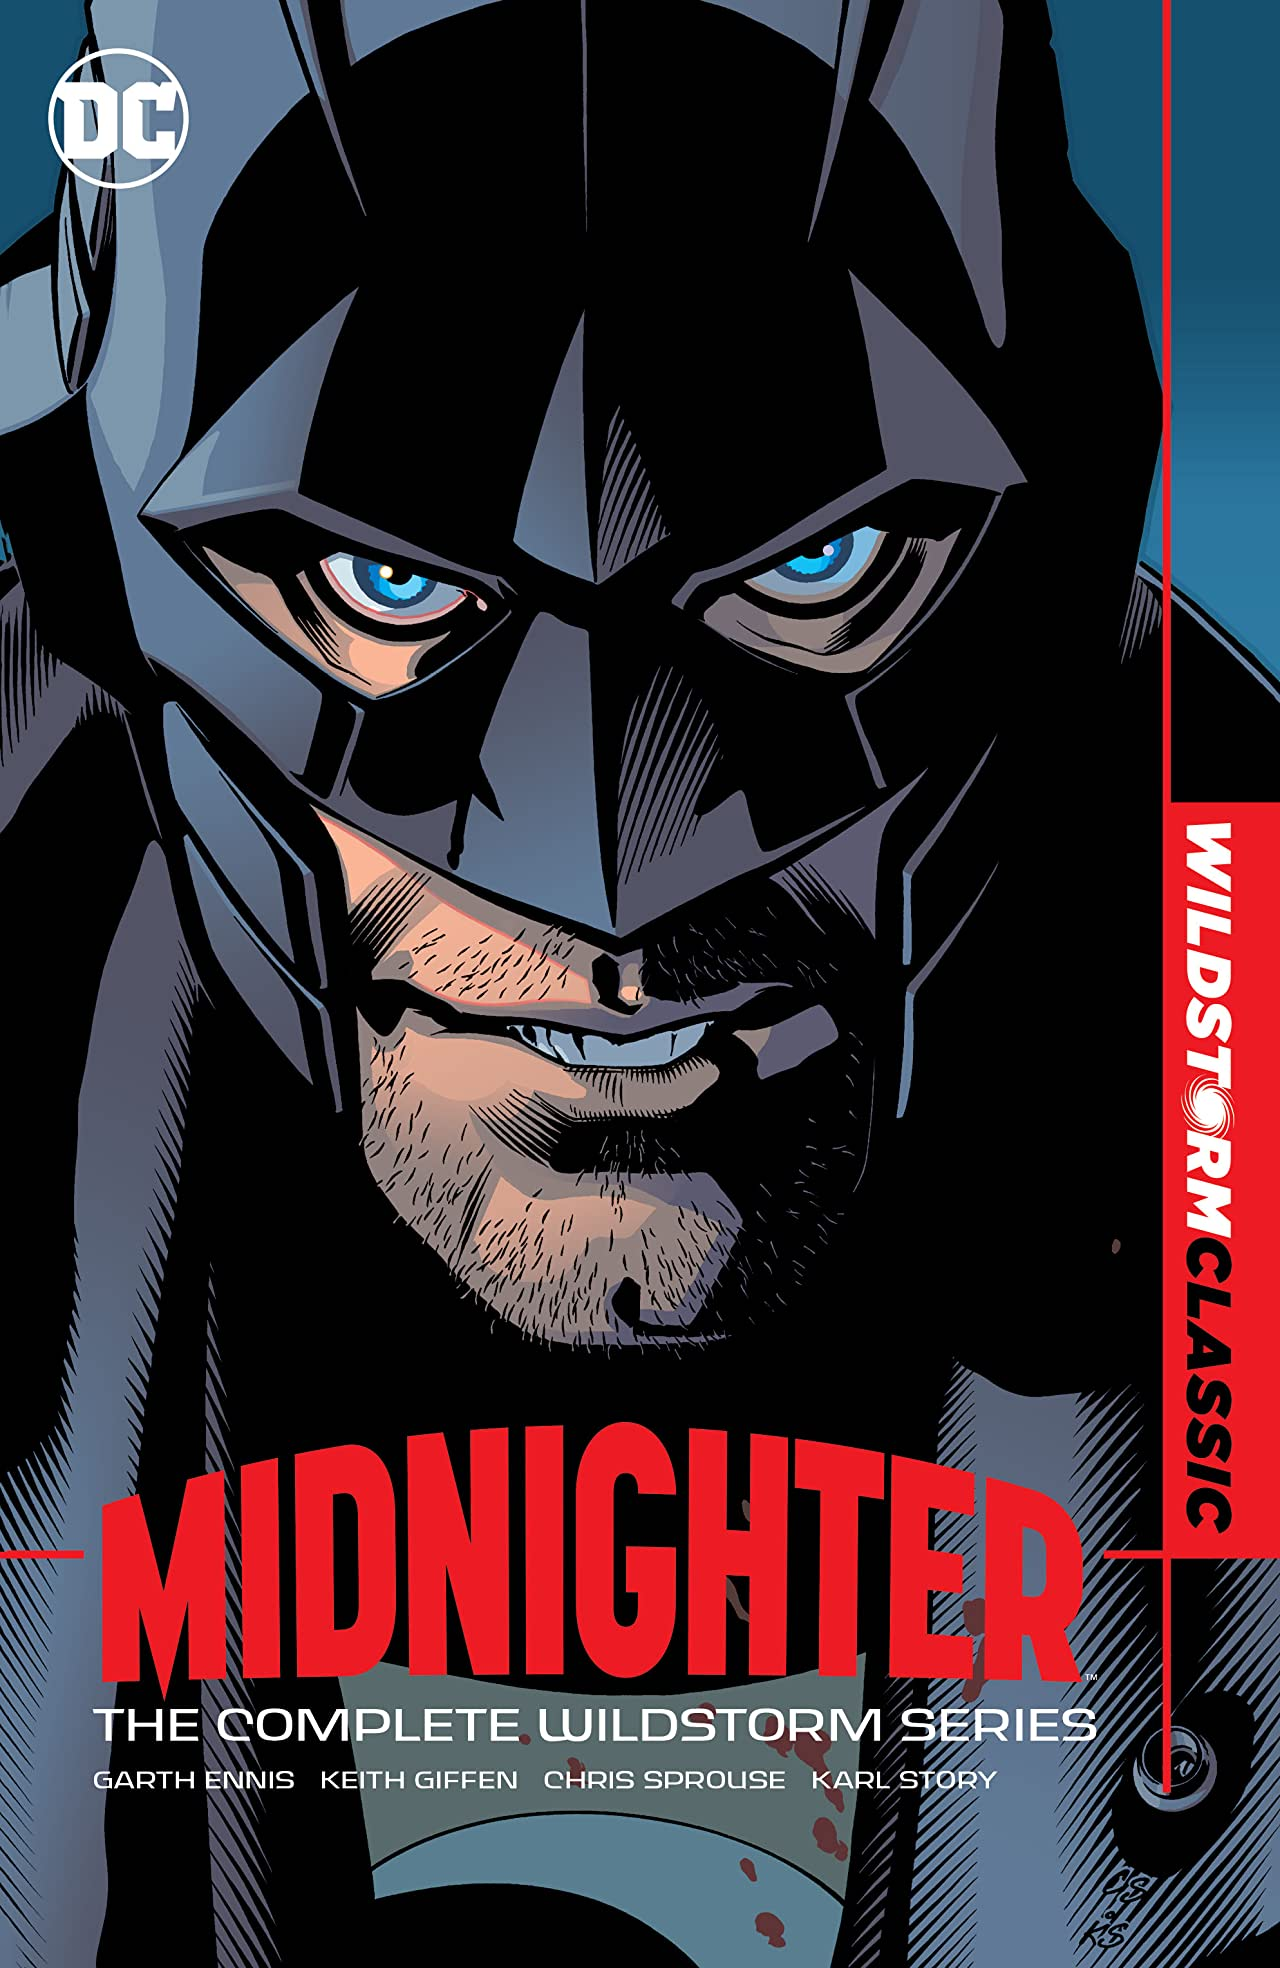 Midnighter: The Complete Wildstorm Series